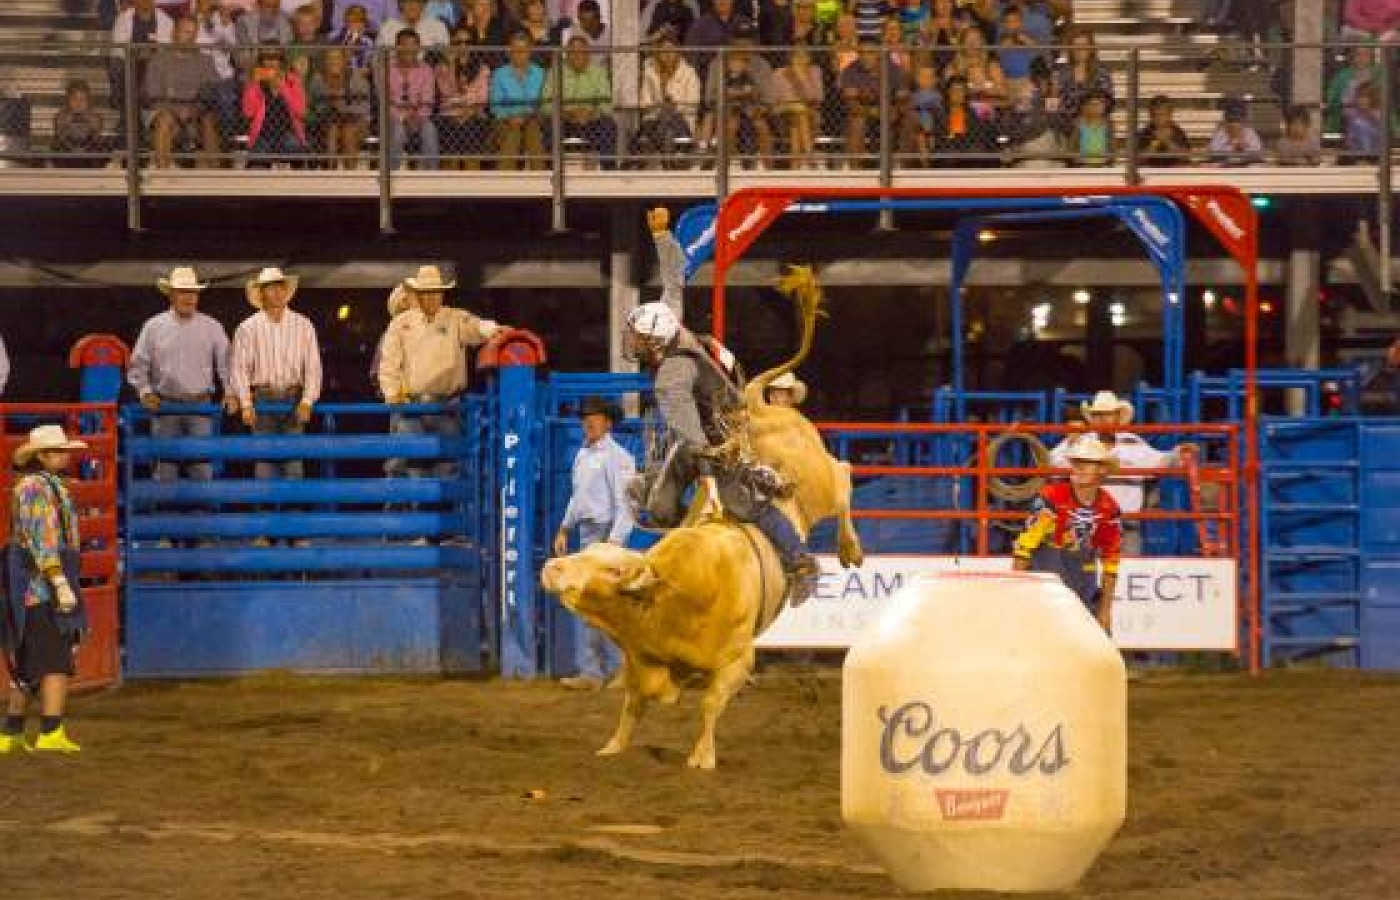 From July 2 through August 28, every Friday and Saturday means the Steamboat Pro Rodeo Series at the Brent Romick Arena